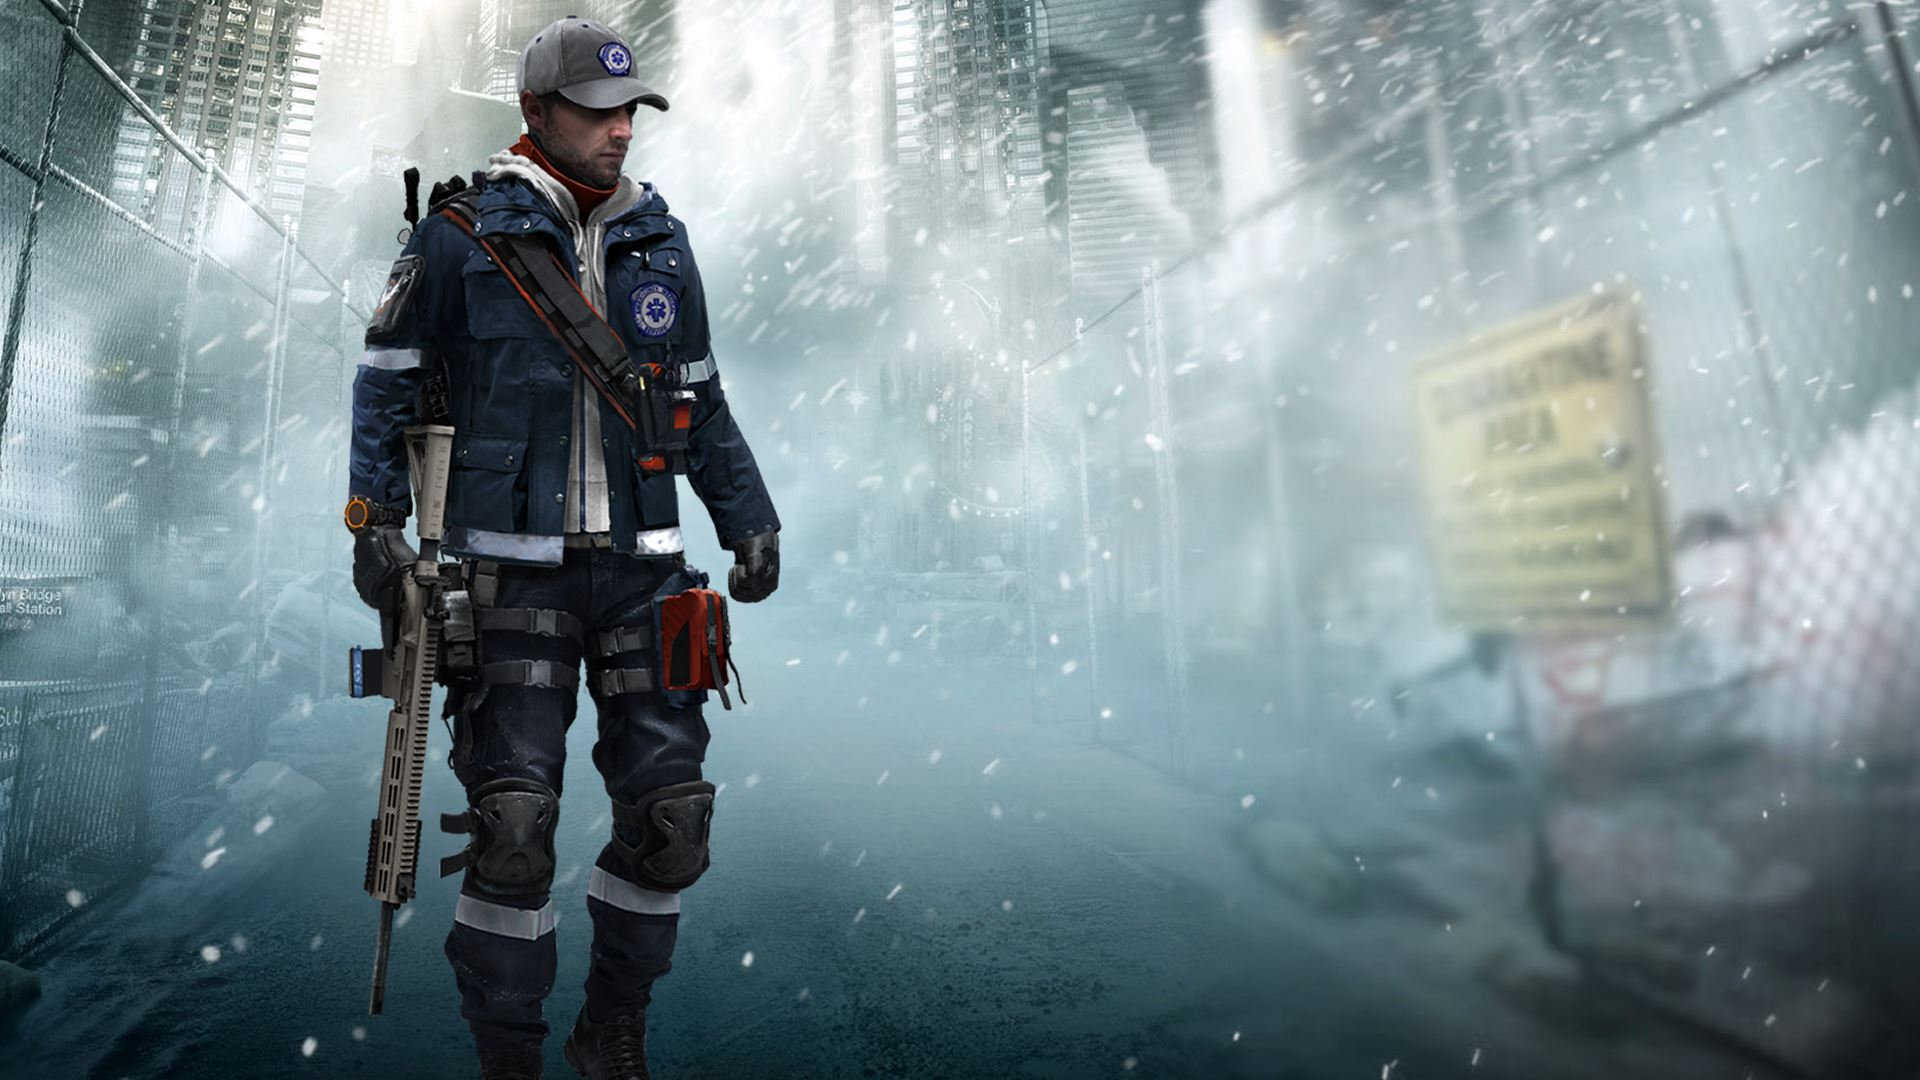 1080p Screenshots Of Tom Clancy S The Division All 7 Pre Order Kits